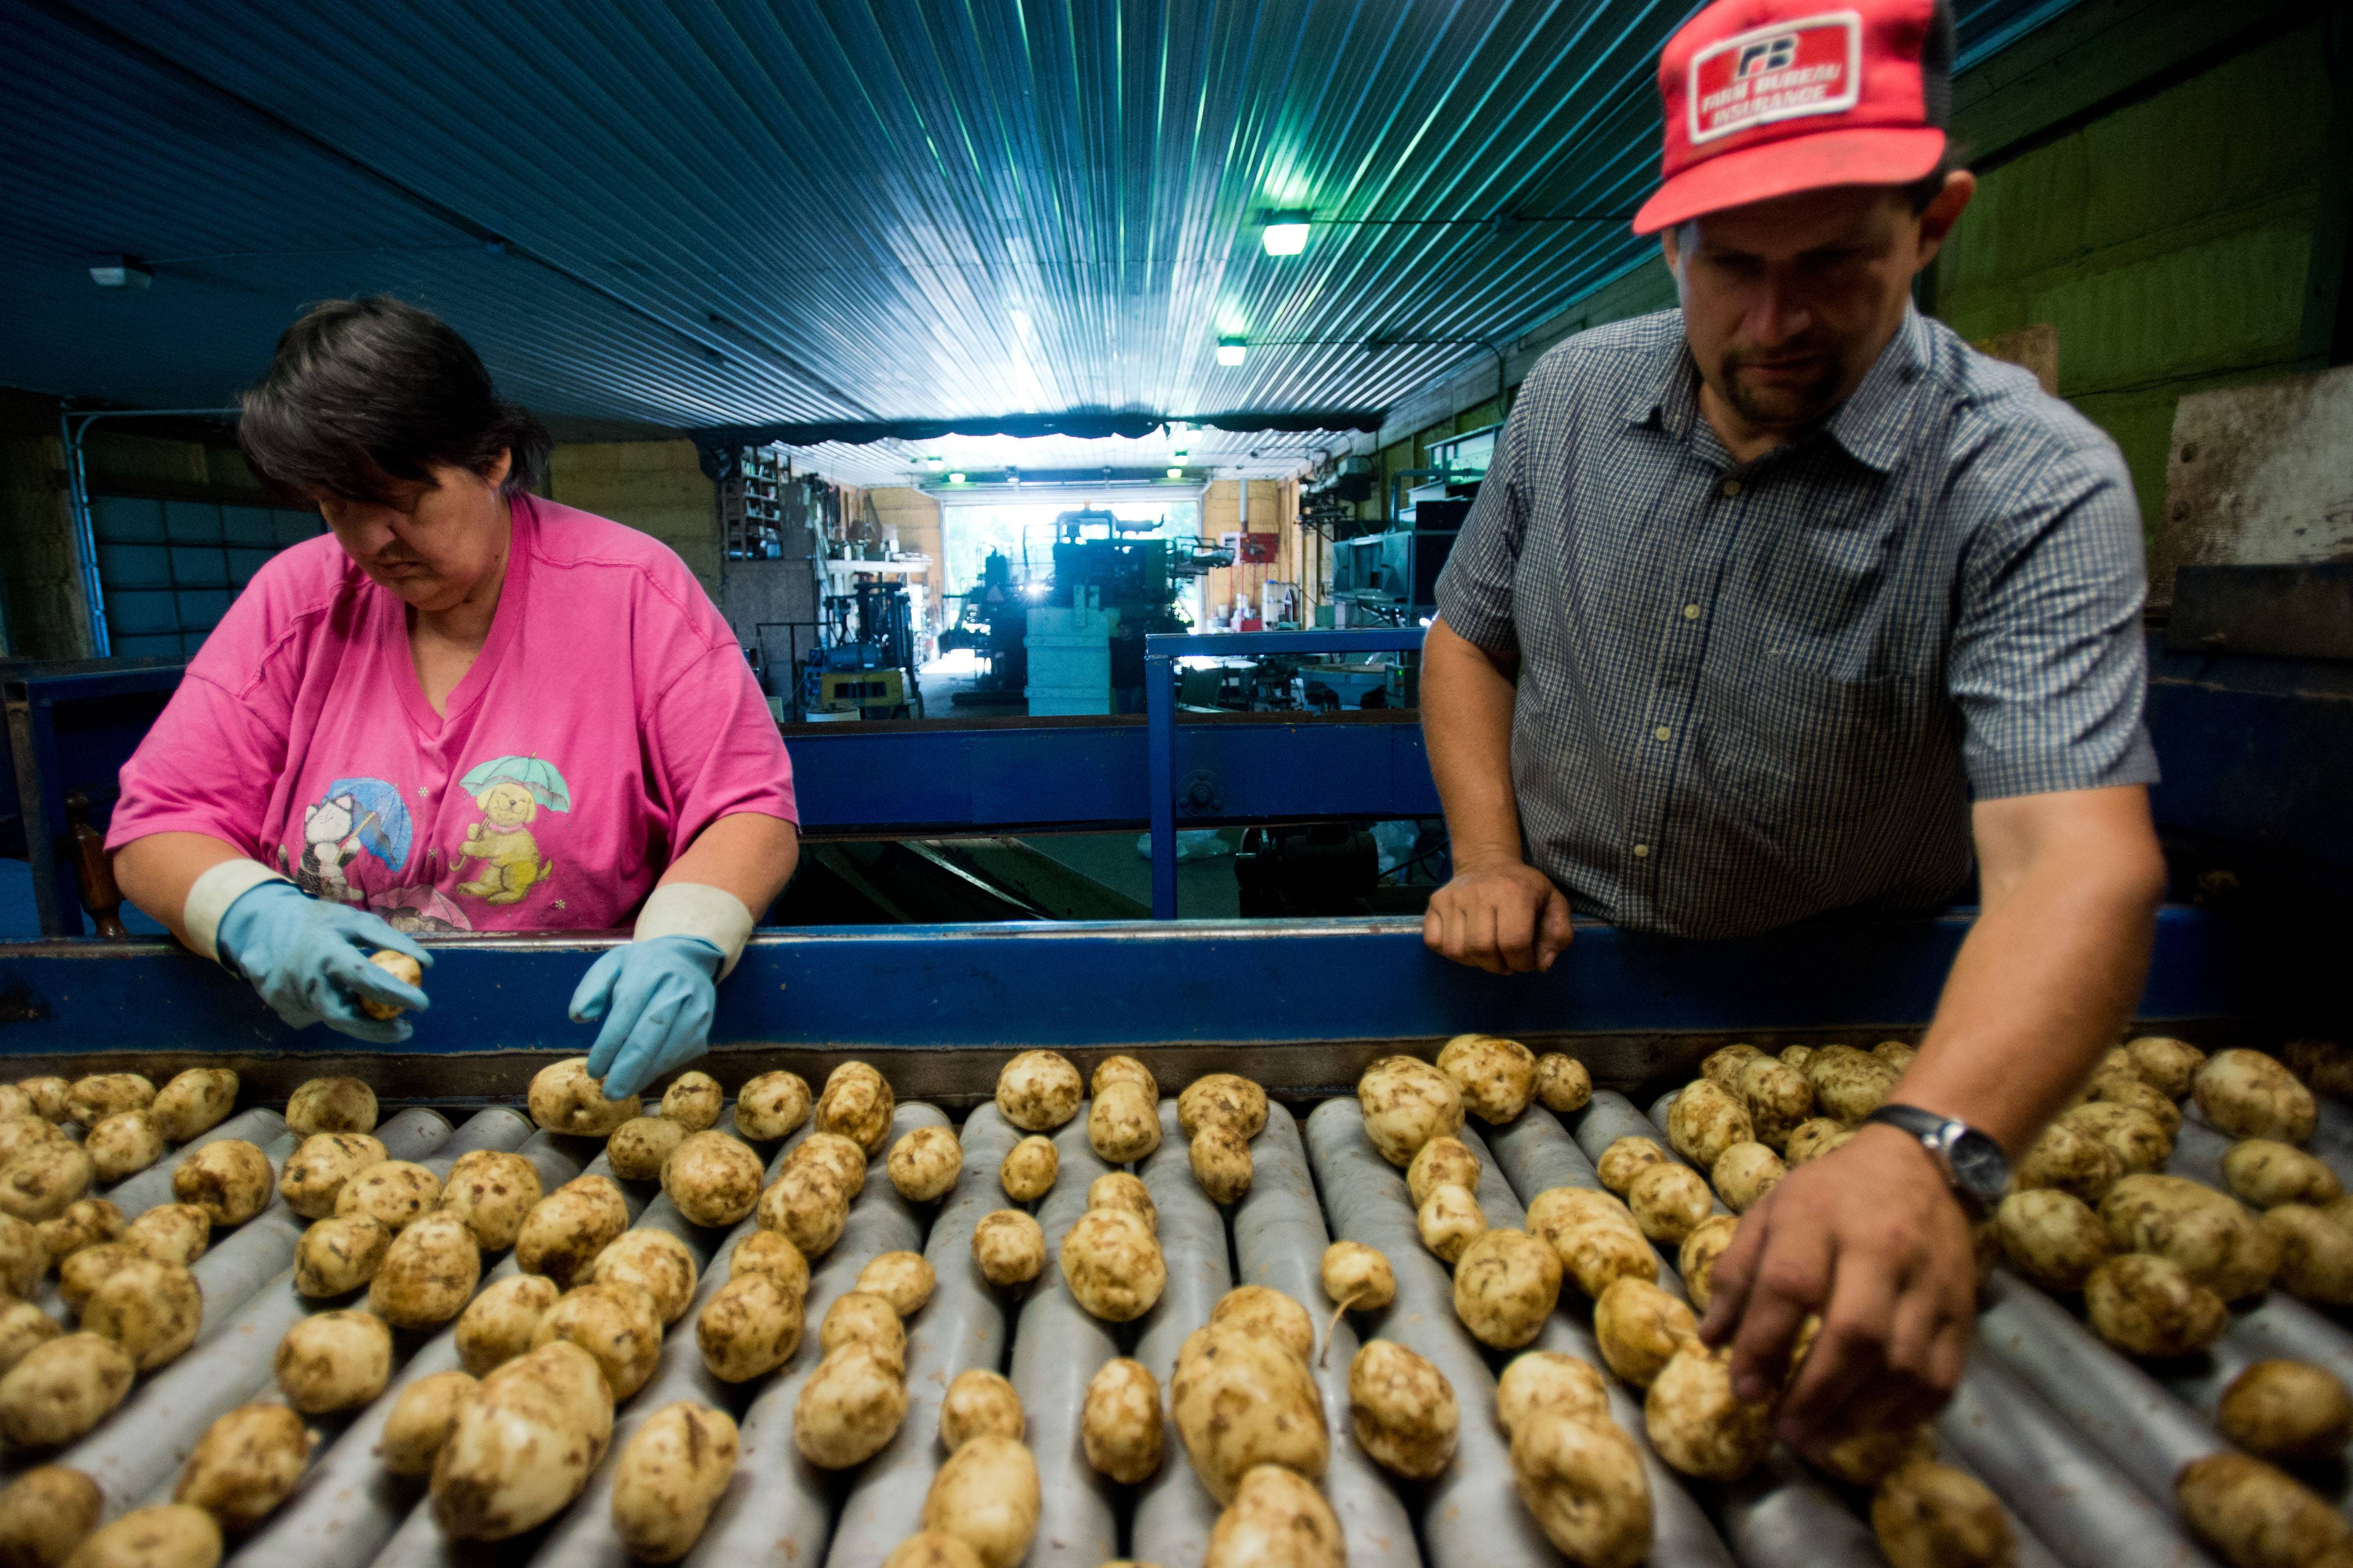 Elaine Talicska and Tom VanOchten sort potatoes as they roll down to fill 10-pound bags for small markets at the VanOchten farm, in Hampton Township, Mich. Falling gasoline costs lowered the prices that U.S. companies received for their goods and services last month, keeping overall inflation in check.